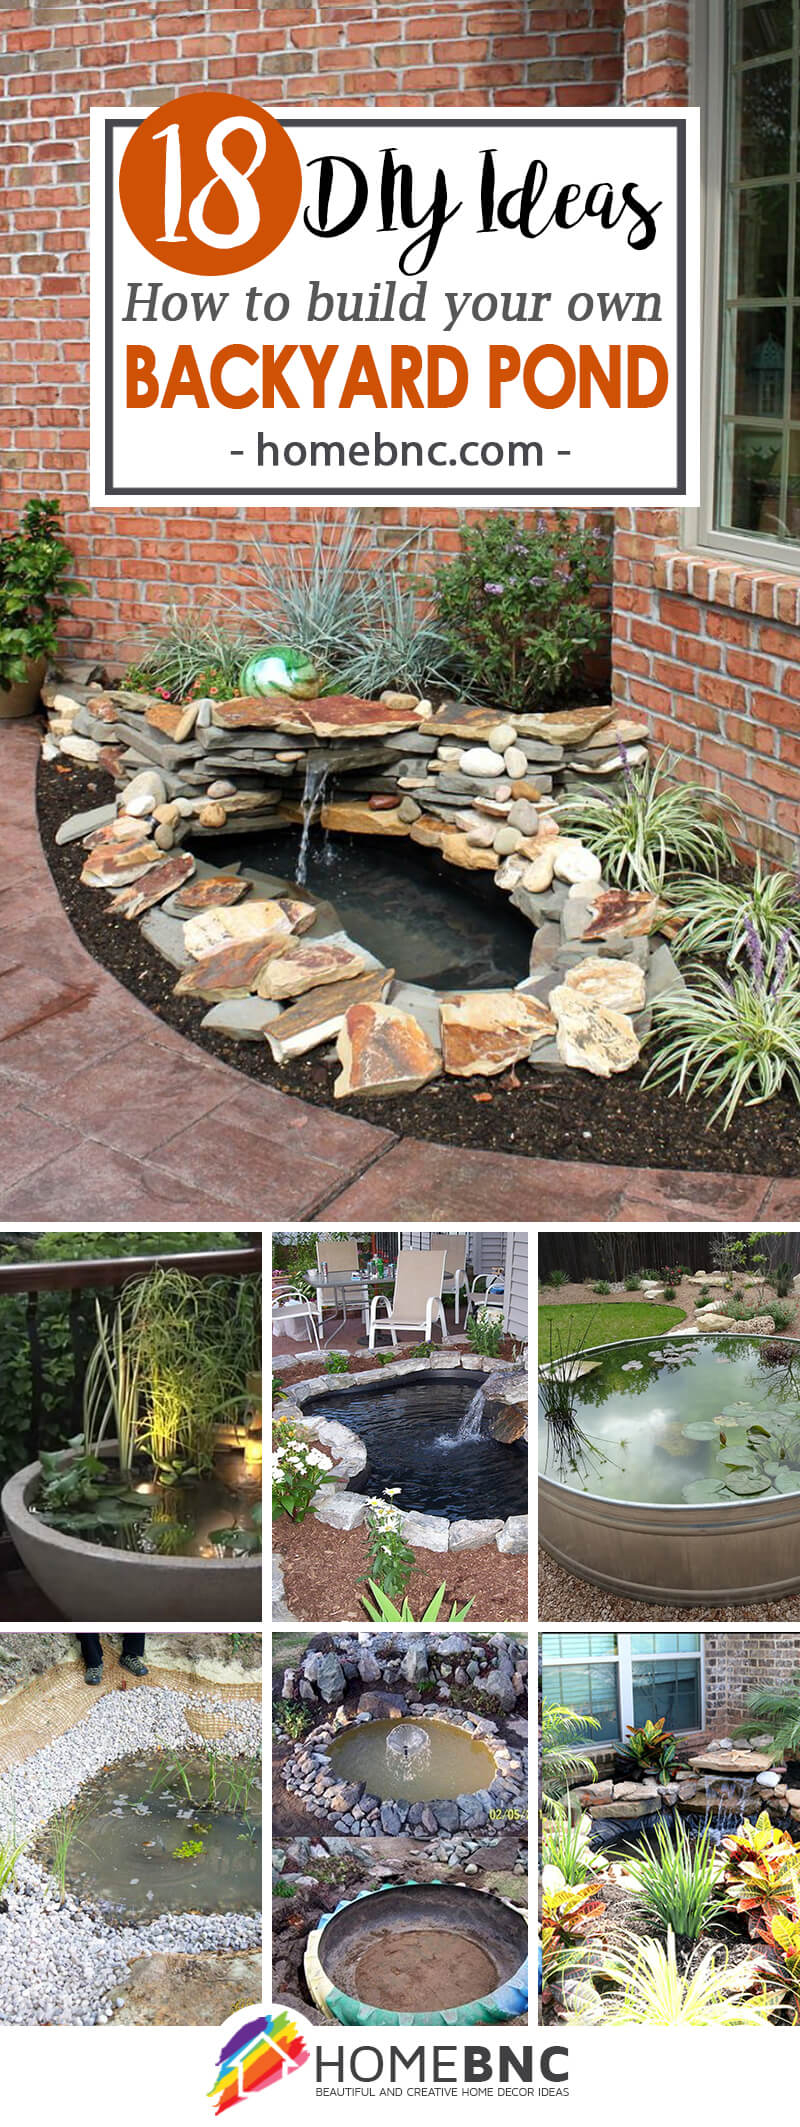 18 Best Diy Backyard Pond Ideas And Designs For 2019 within Small Backyard Pond Ideas